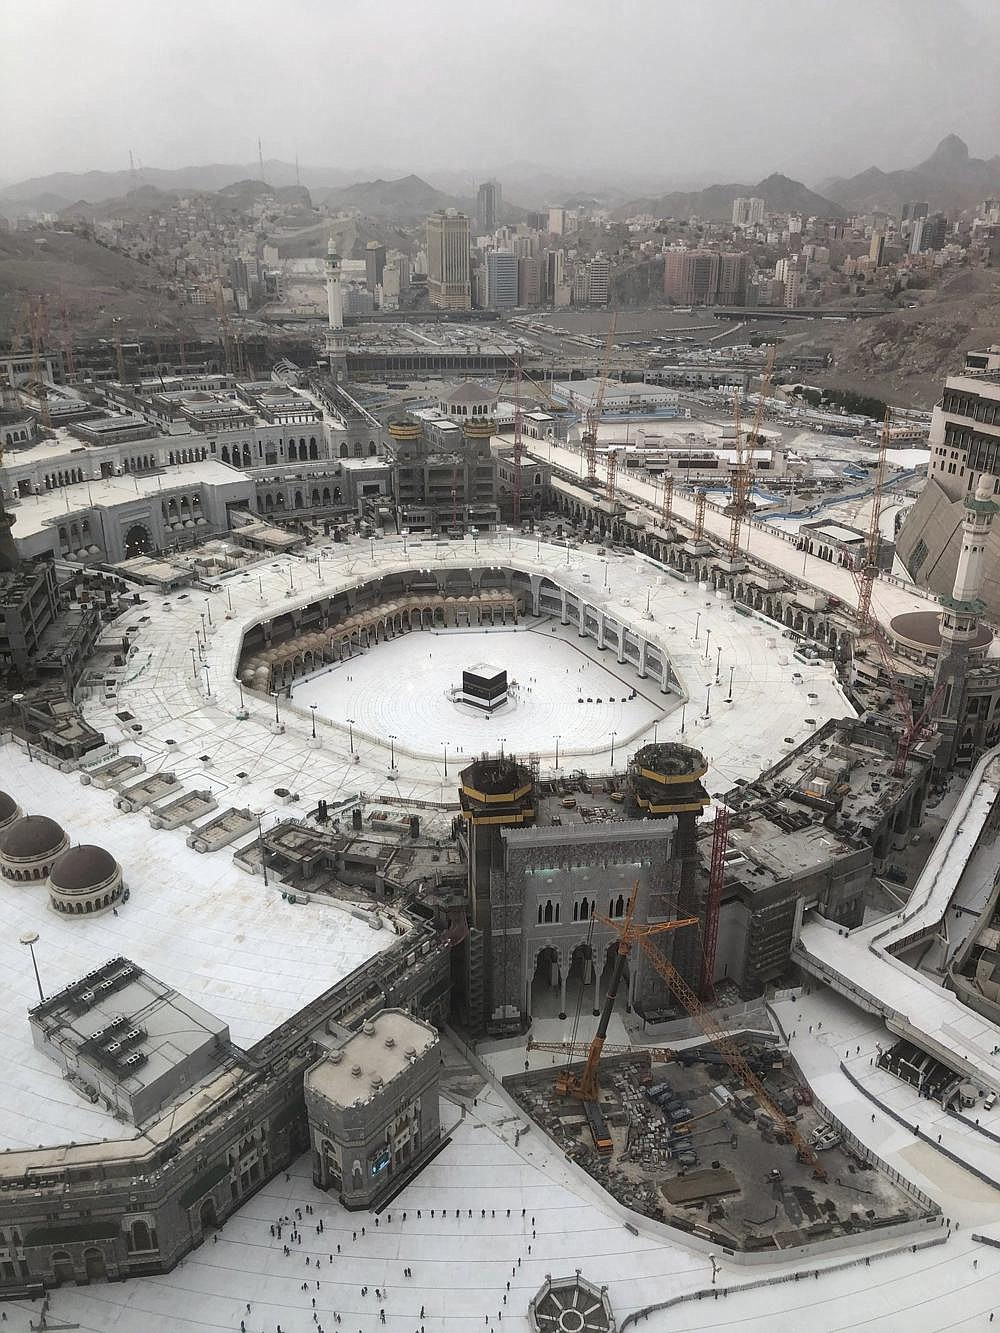 This general view shows the Grand Mosque, at the Muslim holy city of Mecca, Saudi Arabia, on Monday ahead of the Hajj pilgrimage. Anywhere from 1,000 to 10,000 pilgrims will be allowed to perform the annual hajj pilgrimage this year due to the coronavirus pandemic.